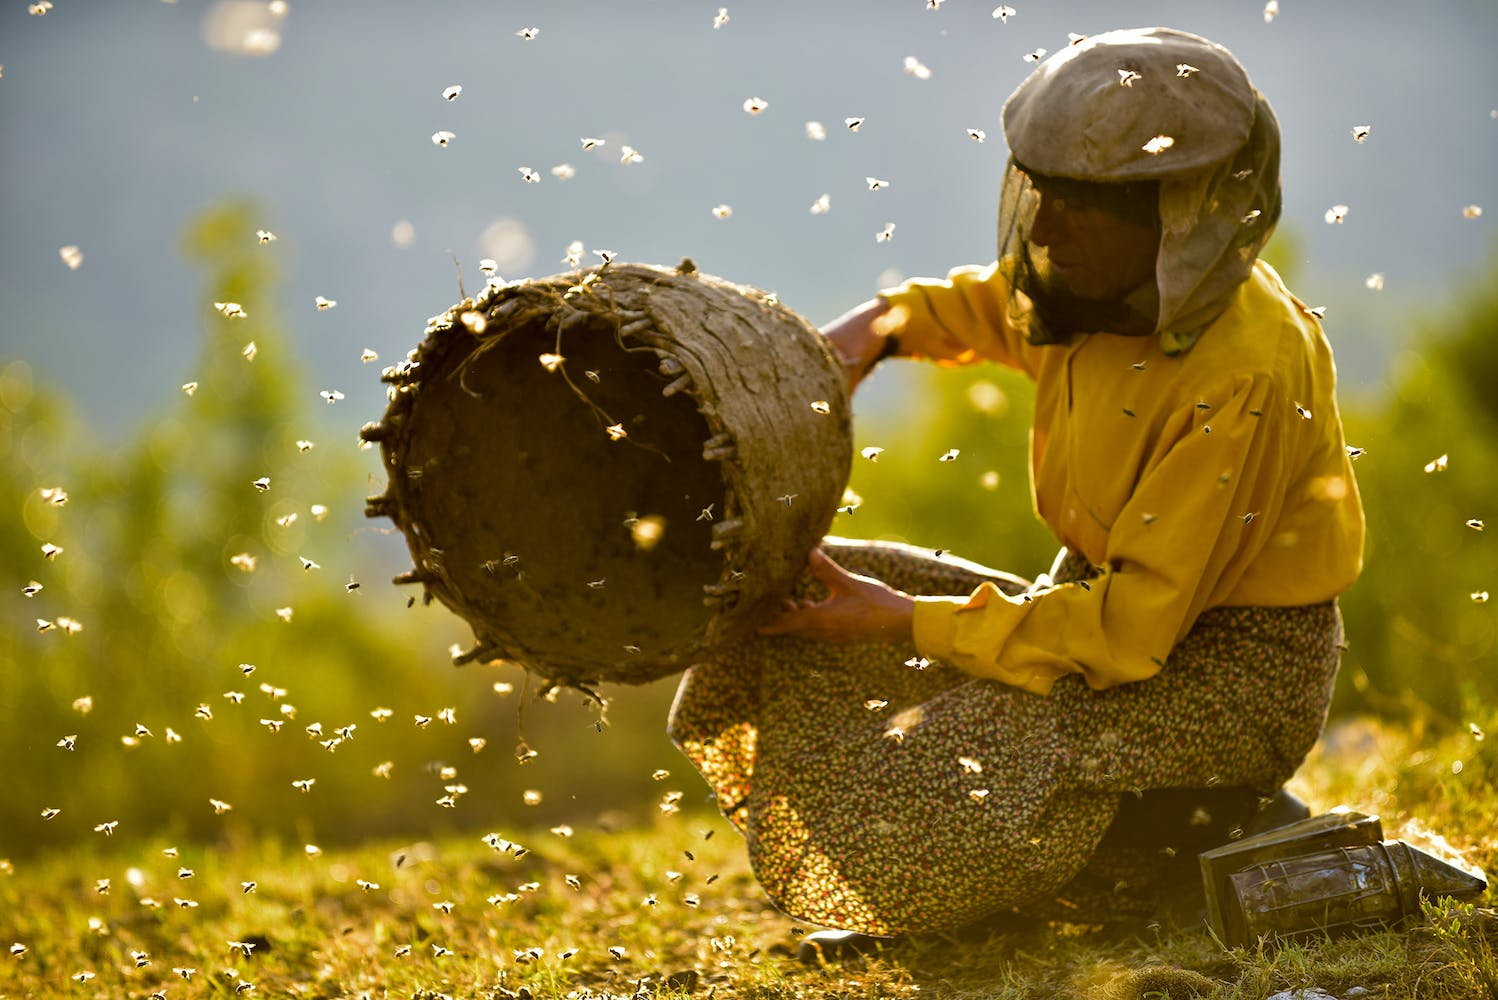 A beekeeper in a protective mask holding part of a bee hive, surrounded by bees in flight